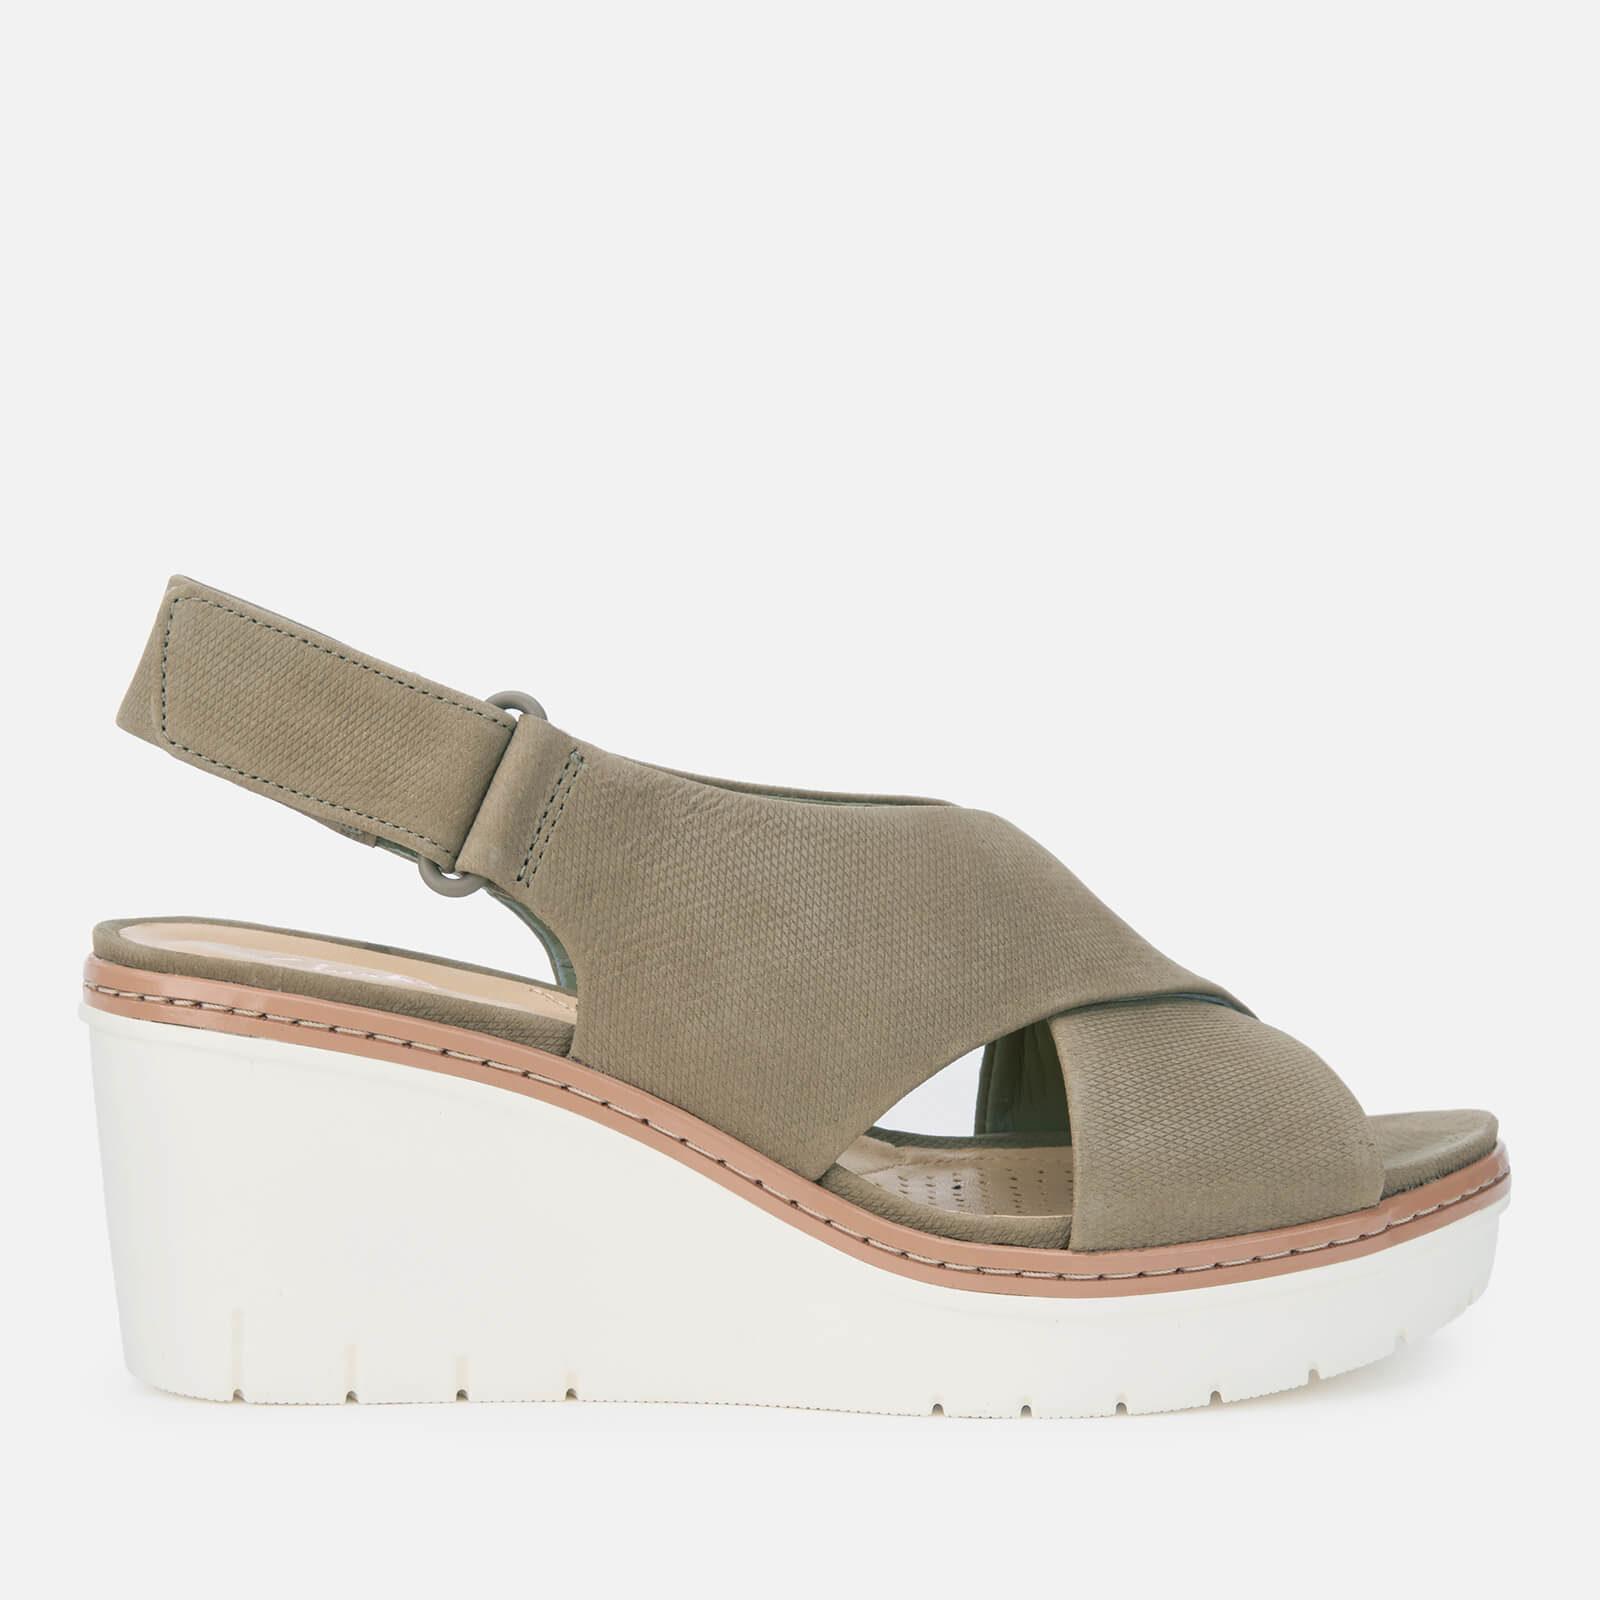 037a595364dc Clarks Women s Palm Candid Nubuck Wedged Sandals - Olive Womens Footwear